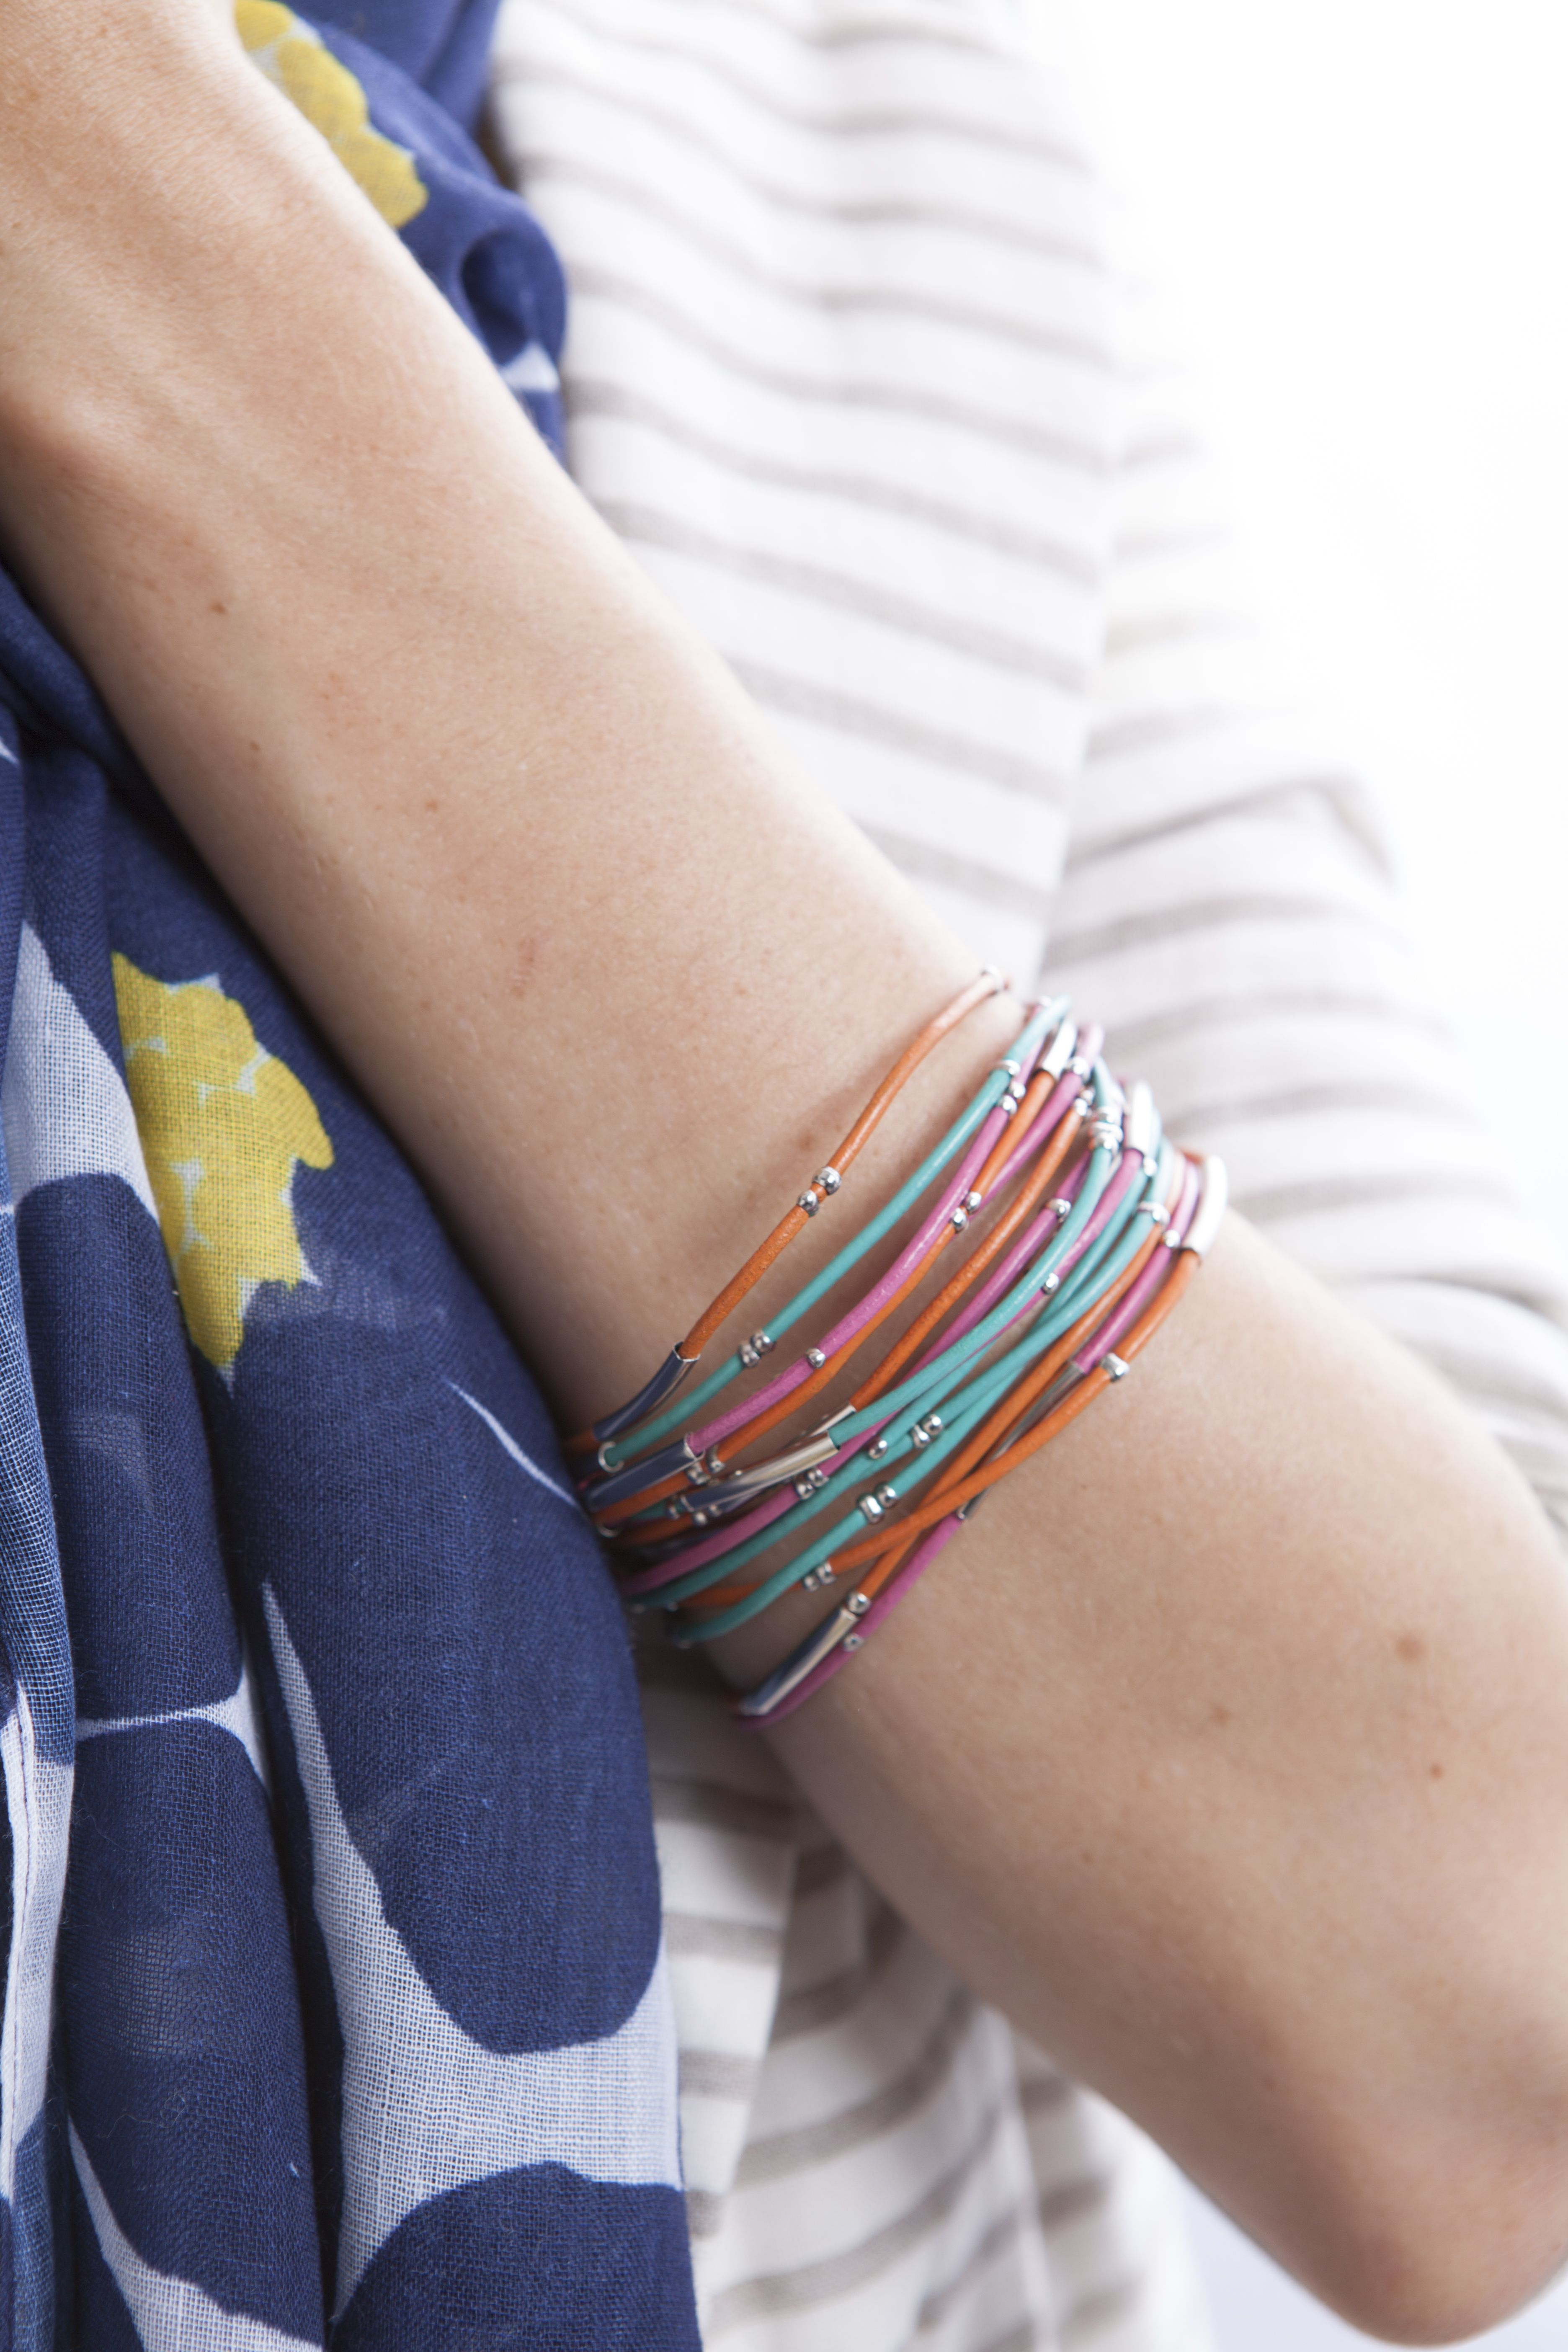 Bracelets and other accessories are part of the Mixed Bag Designs collection of reusable bags and totes